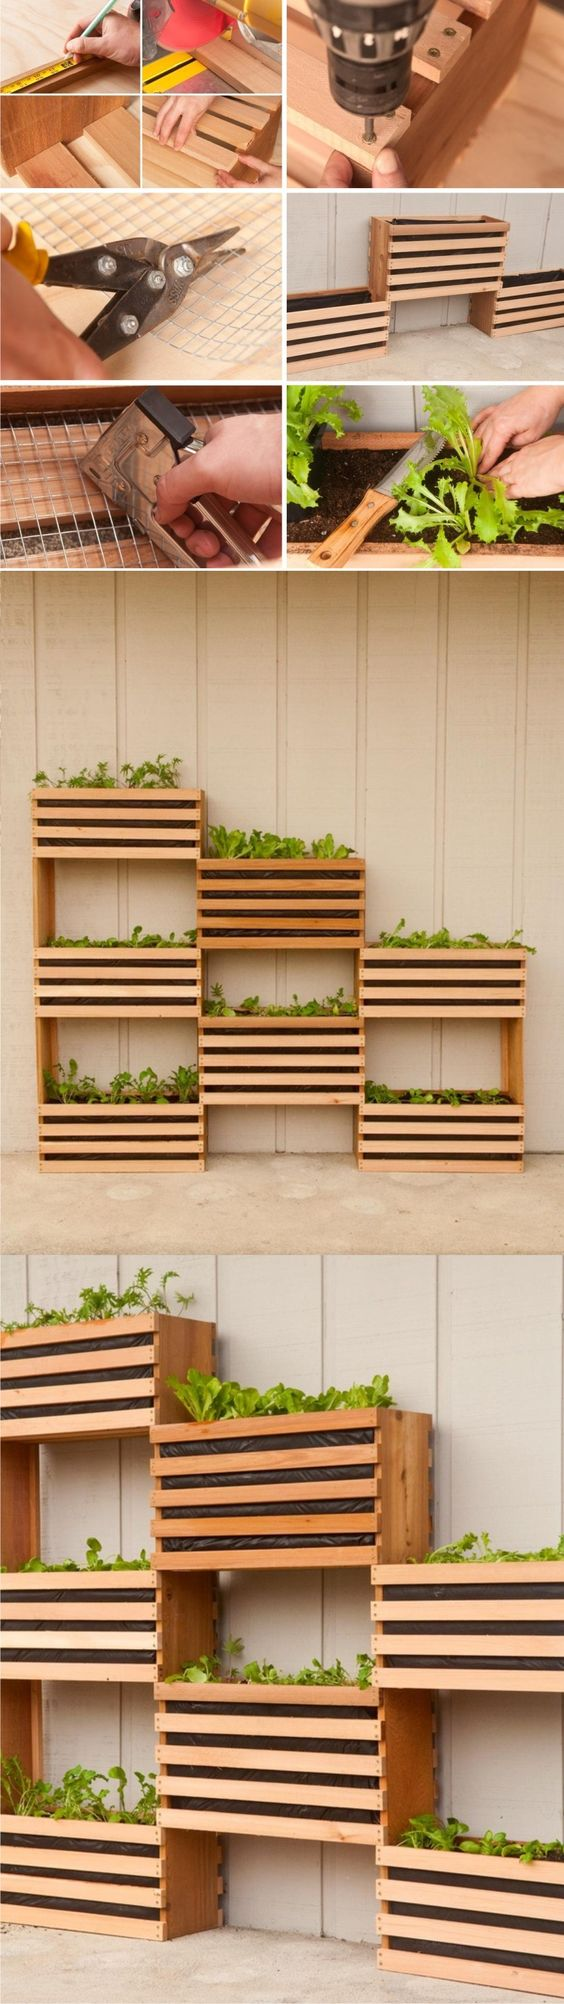 Vertical Stacking Planters.